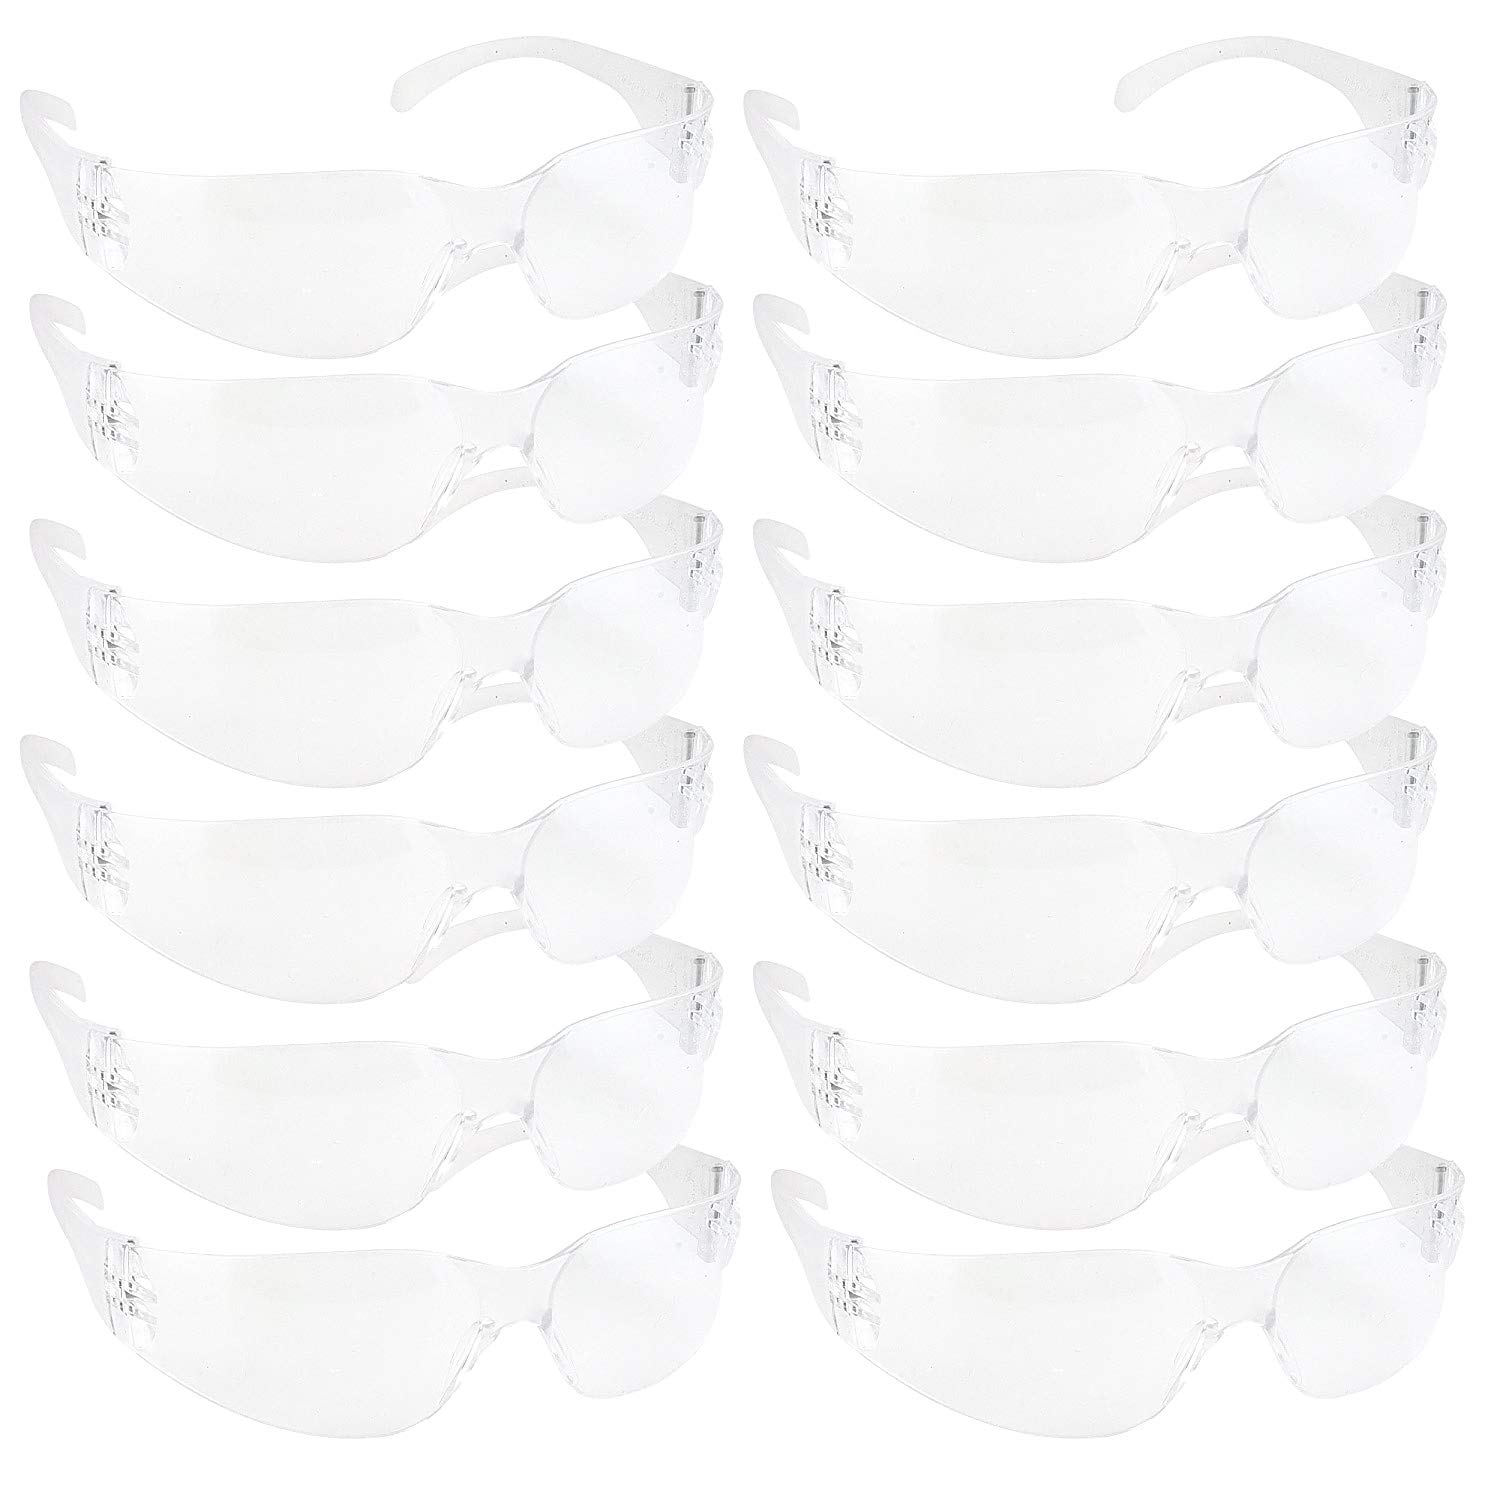 BISON LIFE Safety Glasses, One Size, Clear Protective Polycarbonate Lens, 12 per Box (1 box) by BISON LIFE